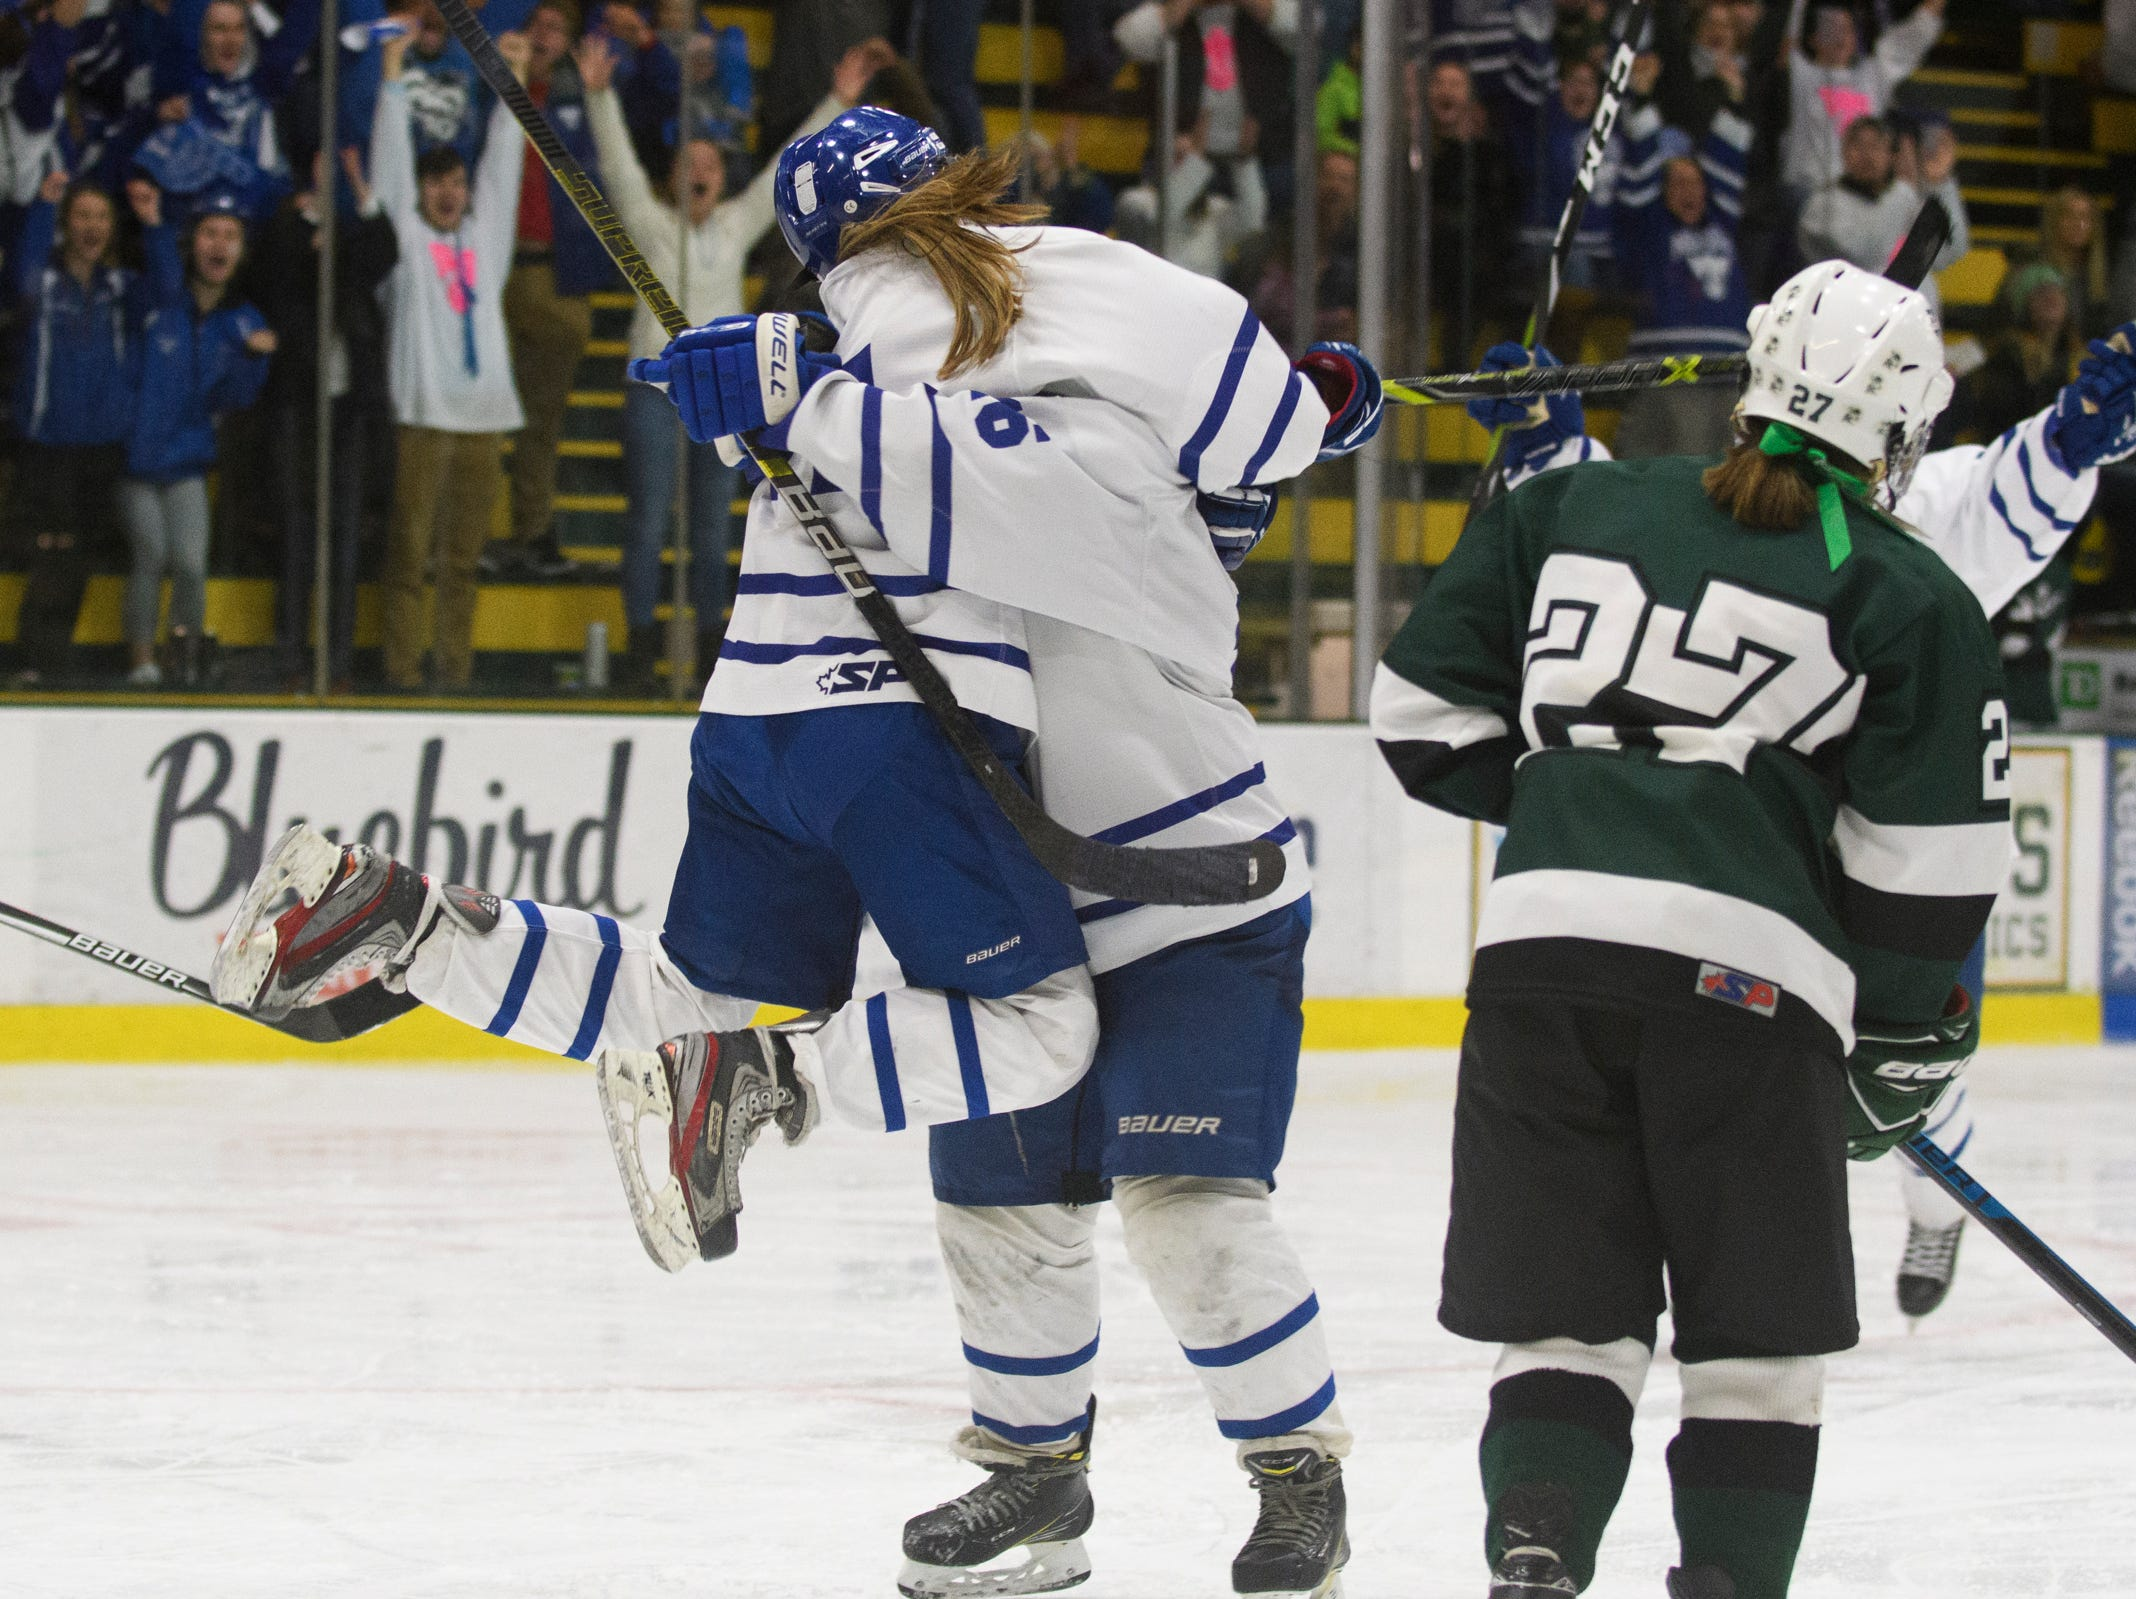 Missisquoi celebrates a goal during the DII girls hockey championship game between the Woodstock Wasps and the Missisquoi Thunderbirds at Gutterson Field House on Thursday night March 14, 2019 in Burlington, Vermont.